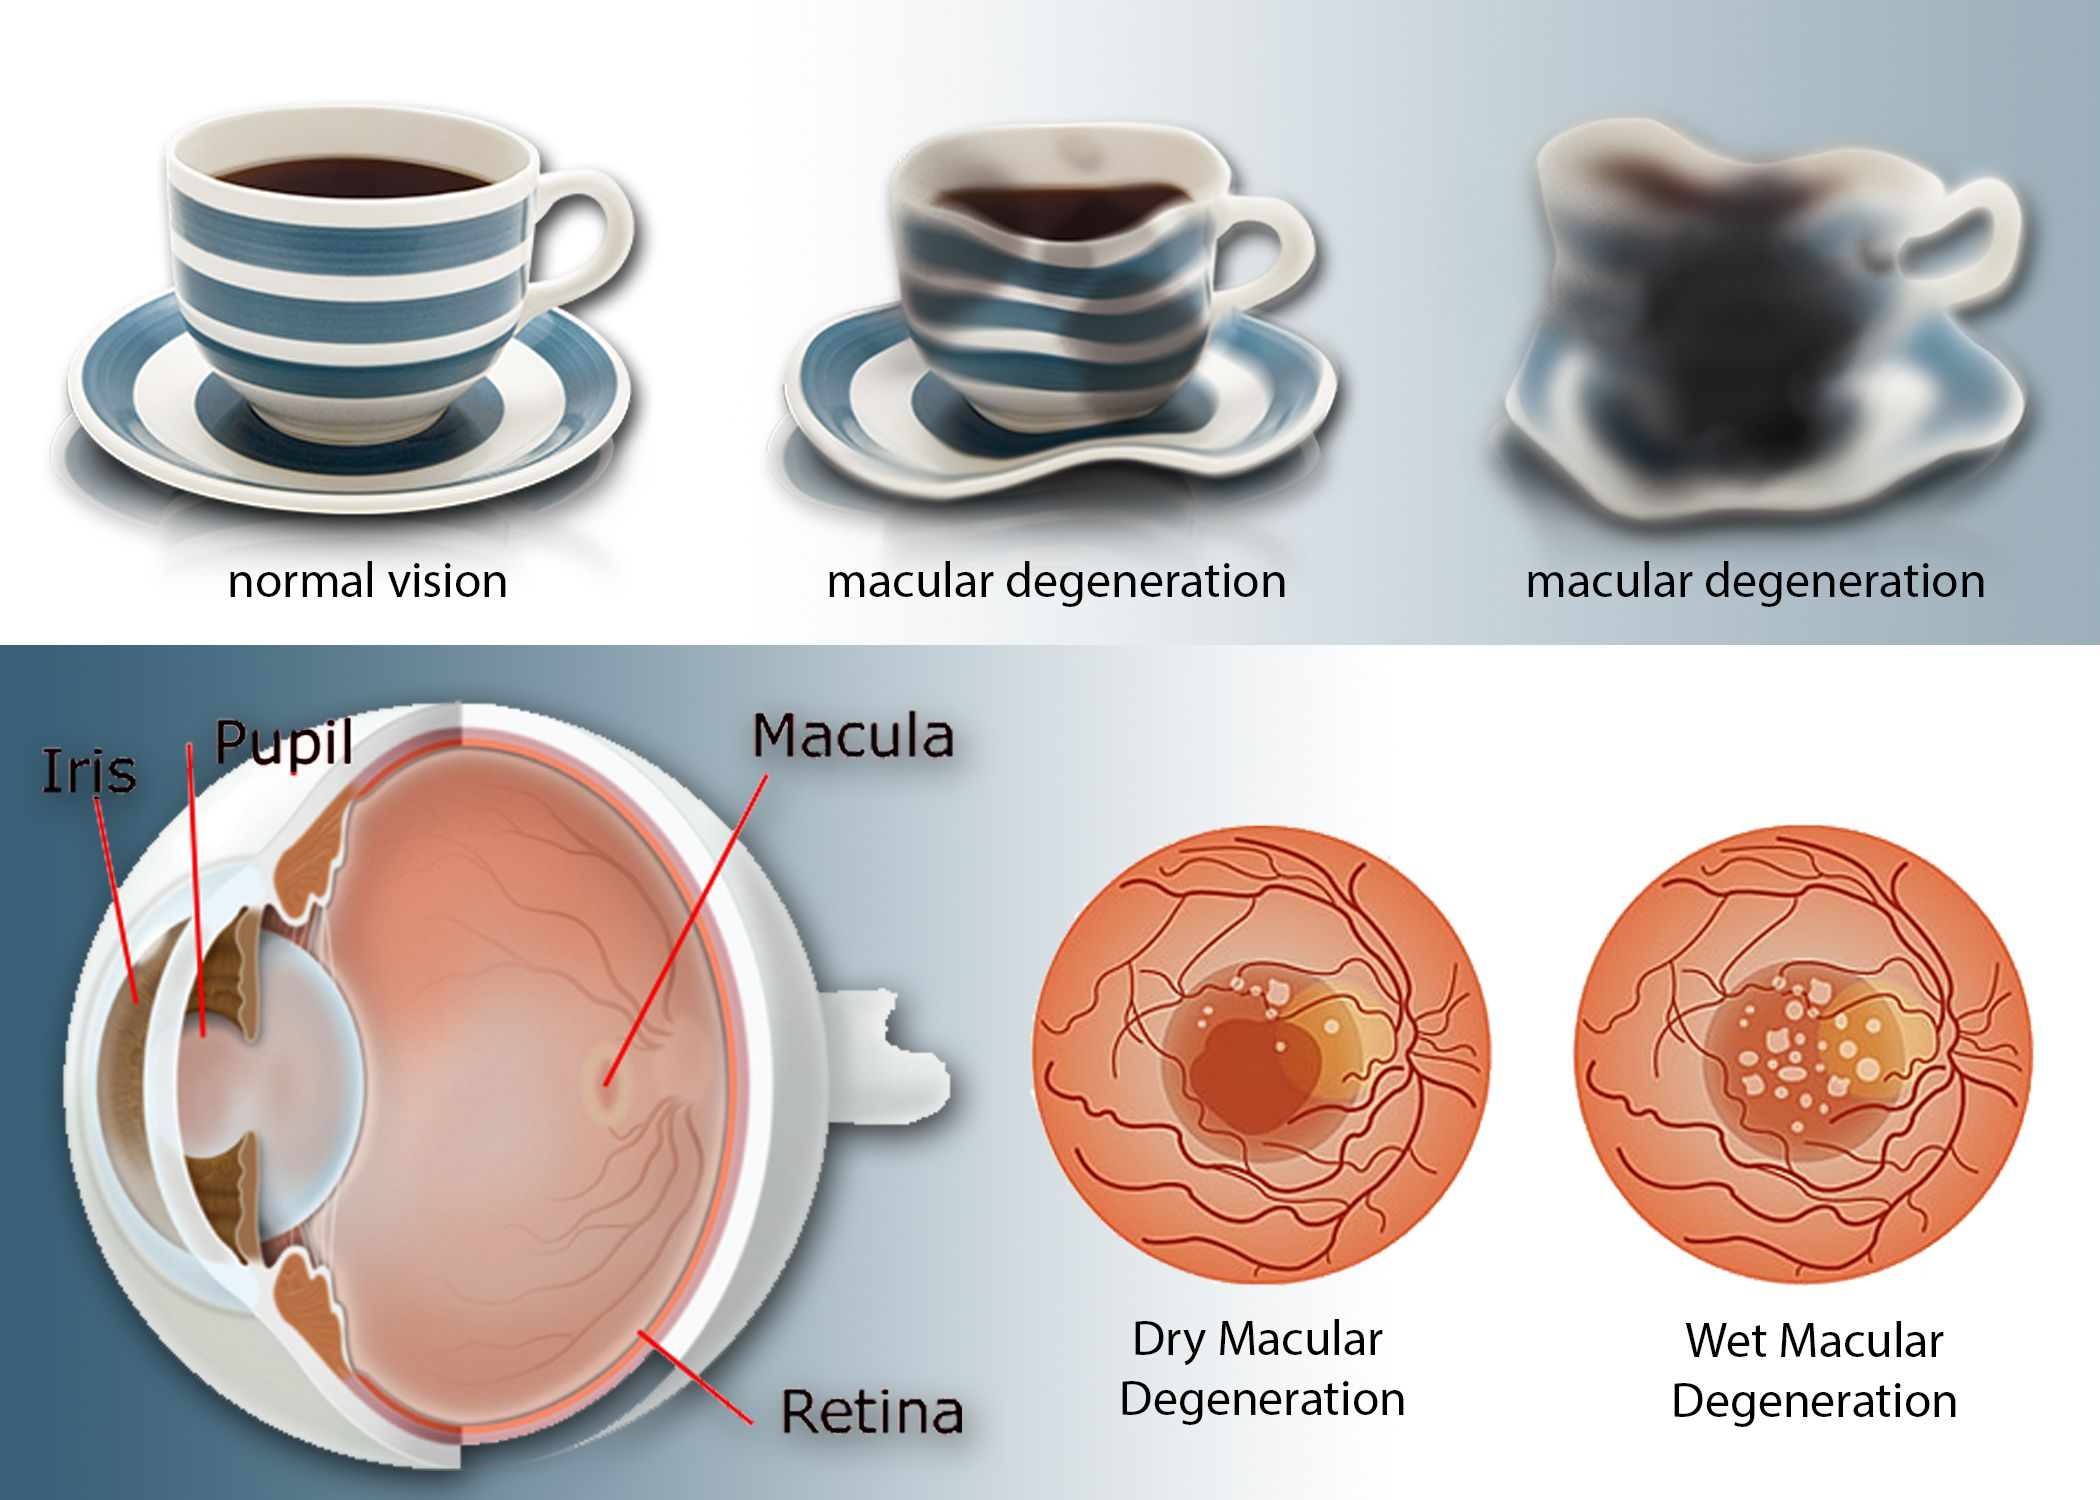 AMD, or agerelated macular degeneration, is a leading